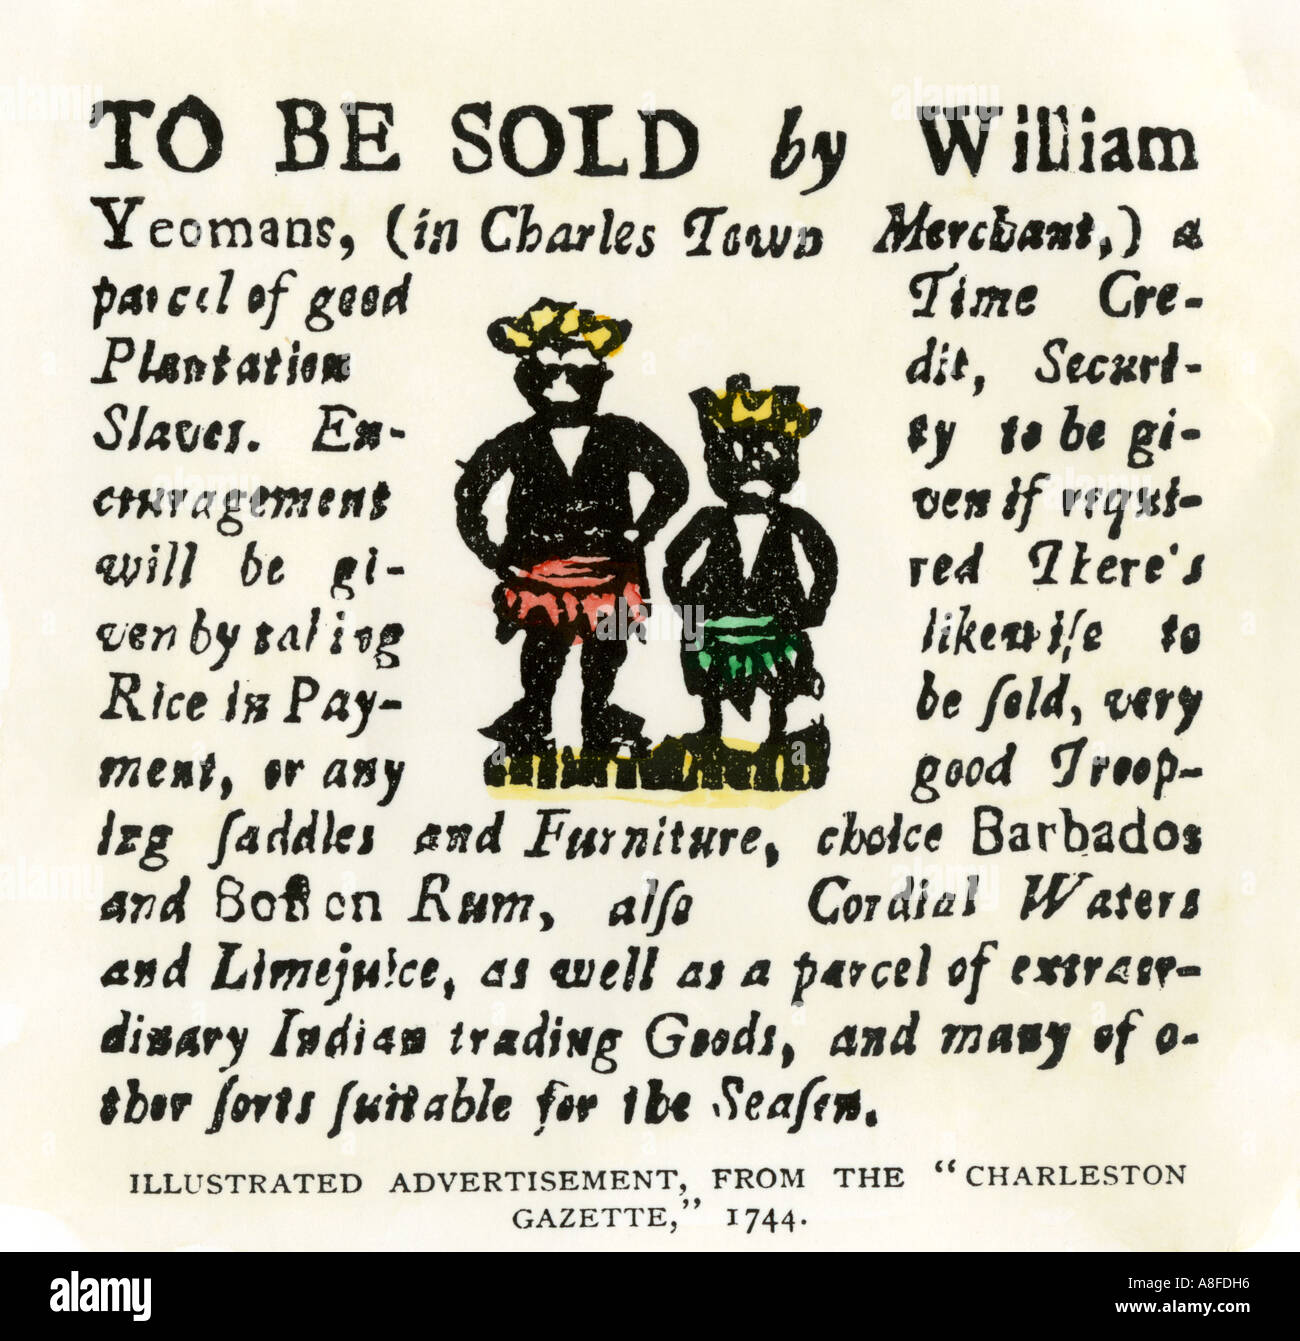 Sale of slaves Barbados rum and seafaring goods advertisement from the Charleston Gazette South Carolina 1744 - Stock Image